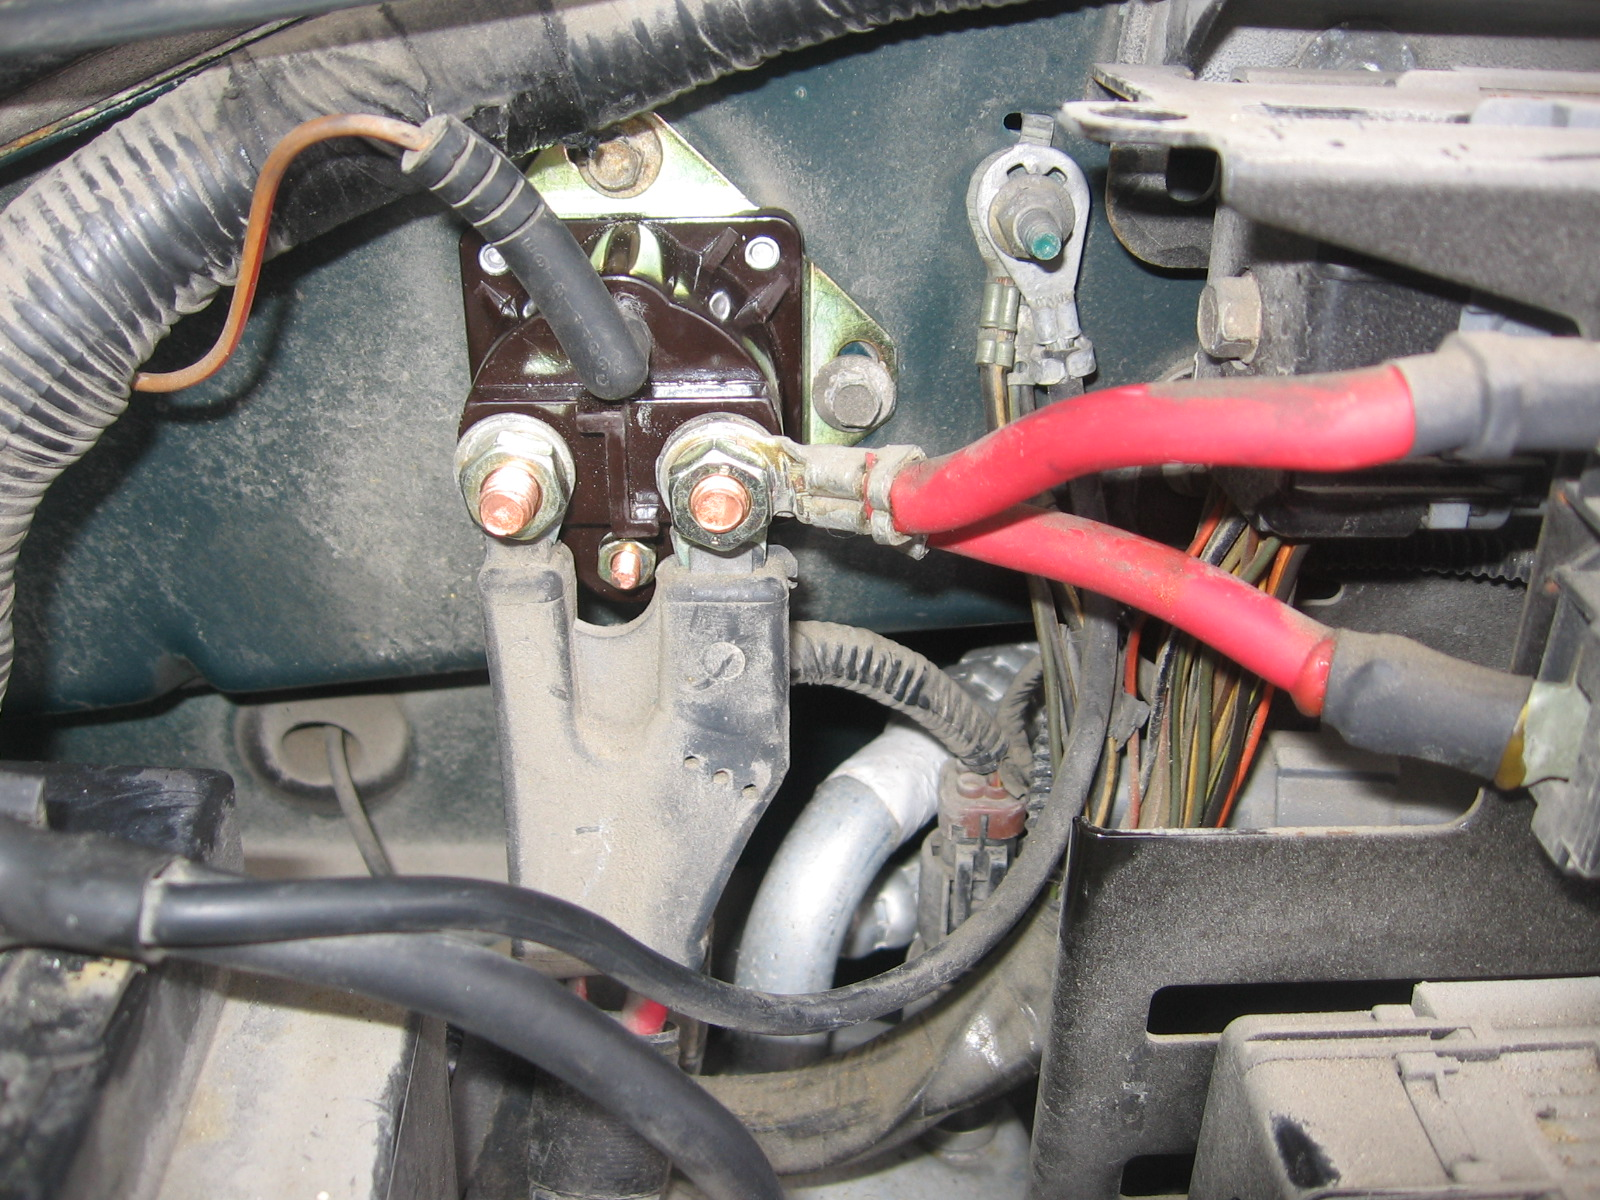 1998 Ford Bronco Fuse Box Wiring Library Images 2000 150 93 Diagram 2007 08 25 121250 Img 1650